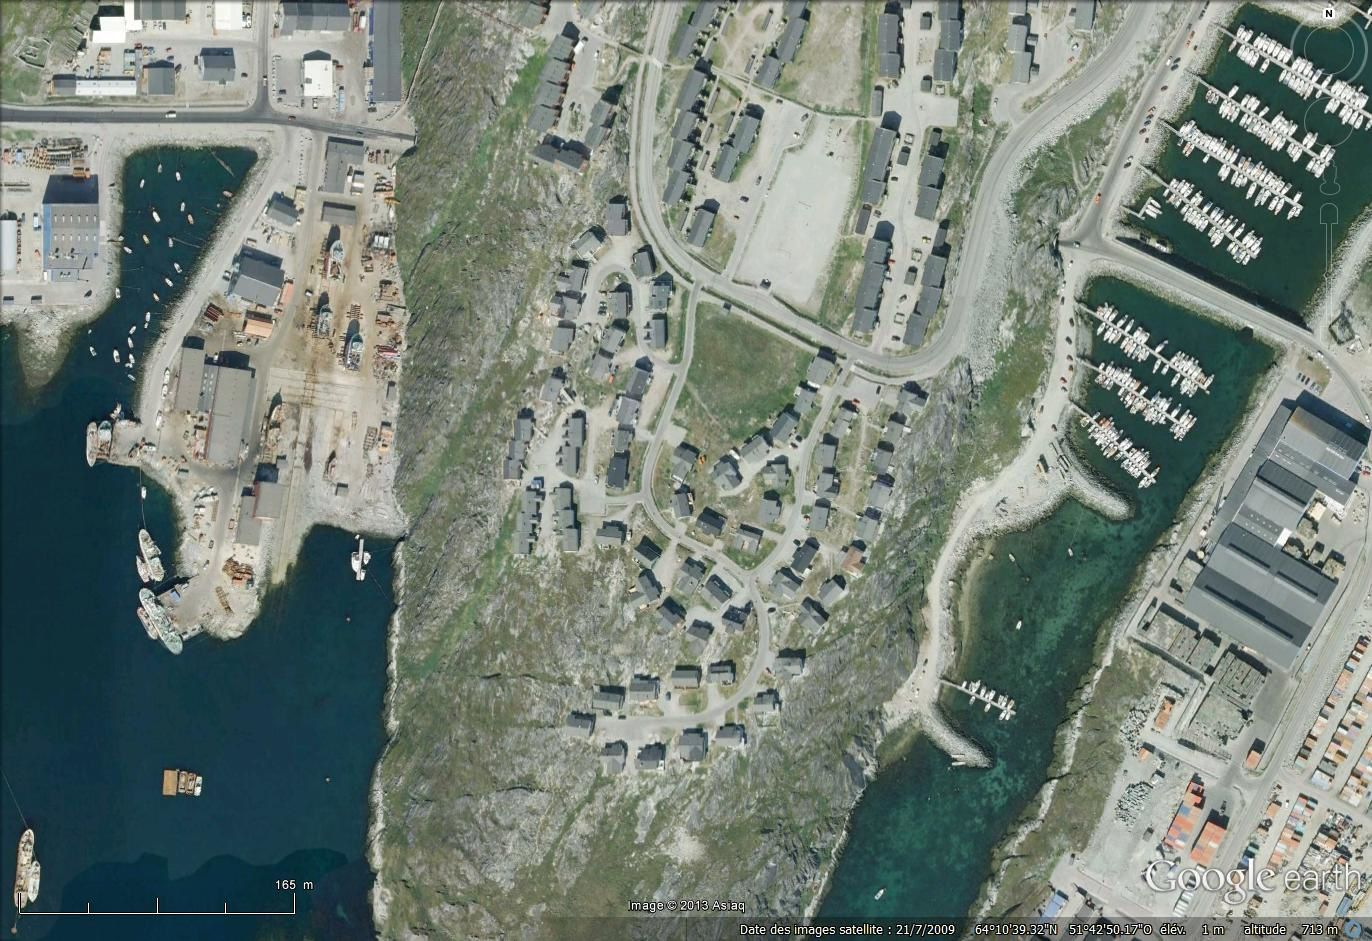 Nuuk (imagerie satellitaire Google earth)